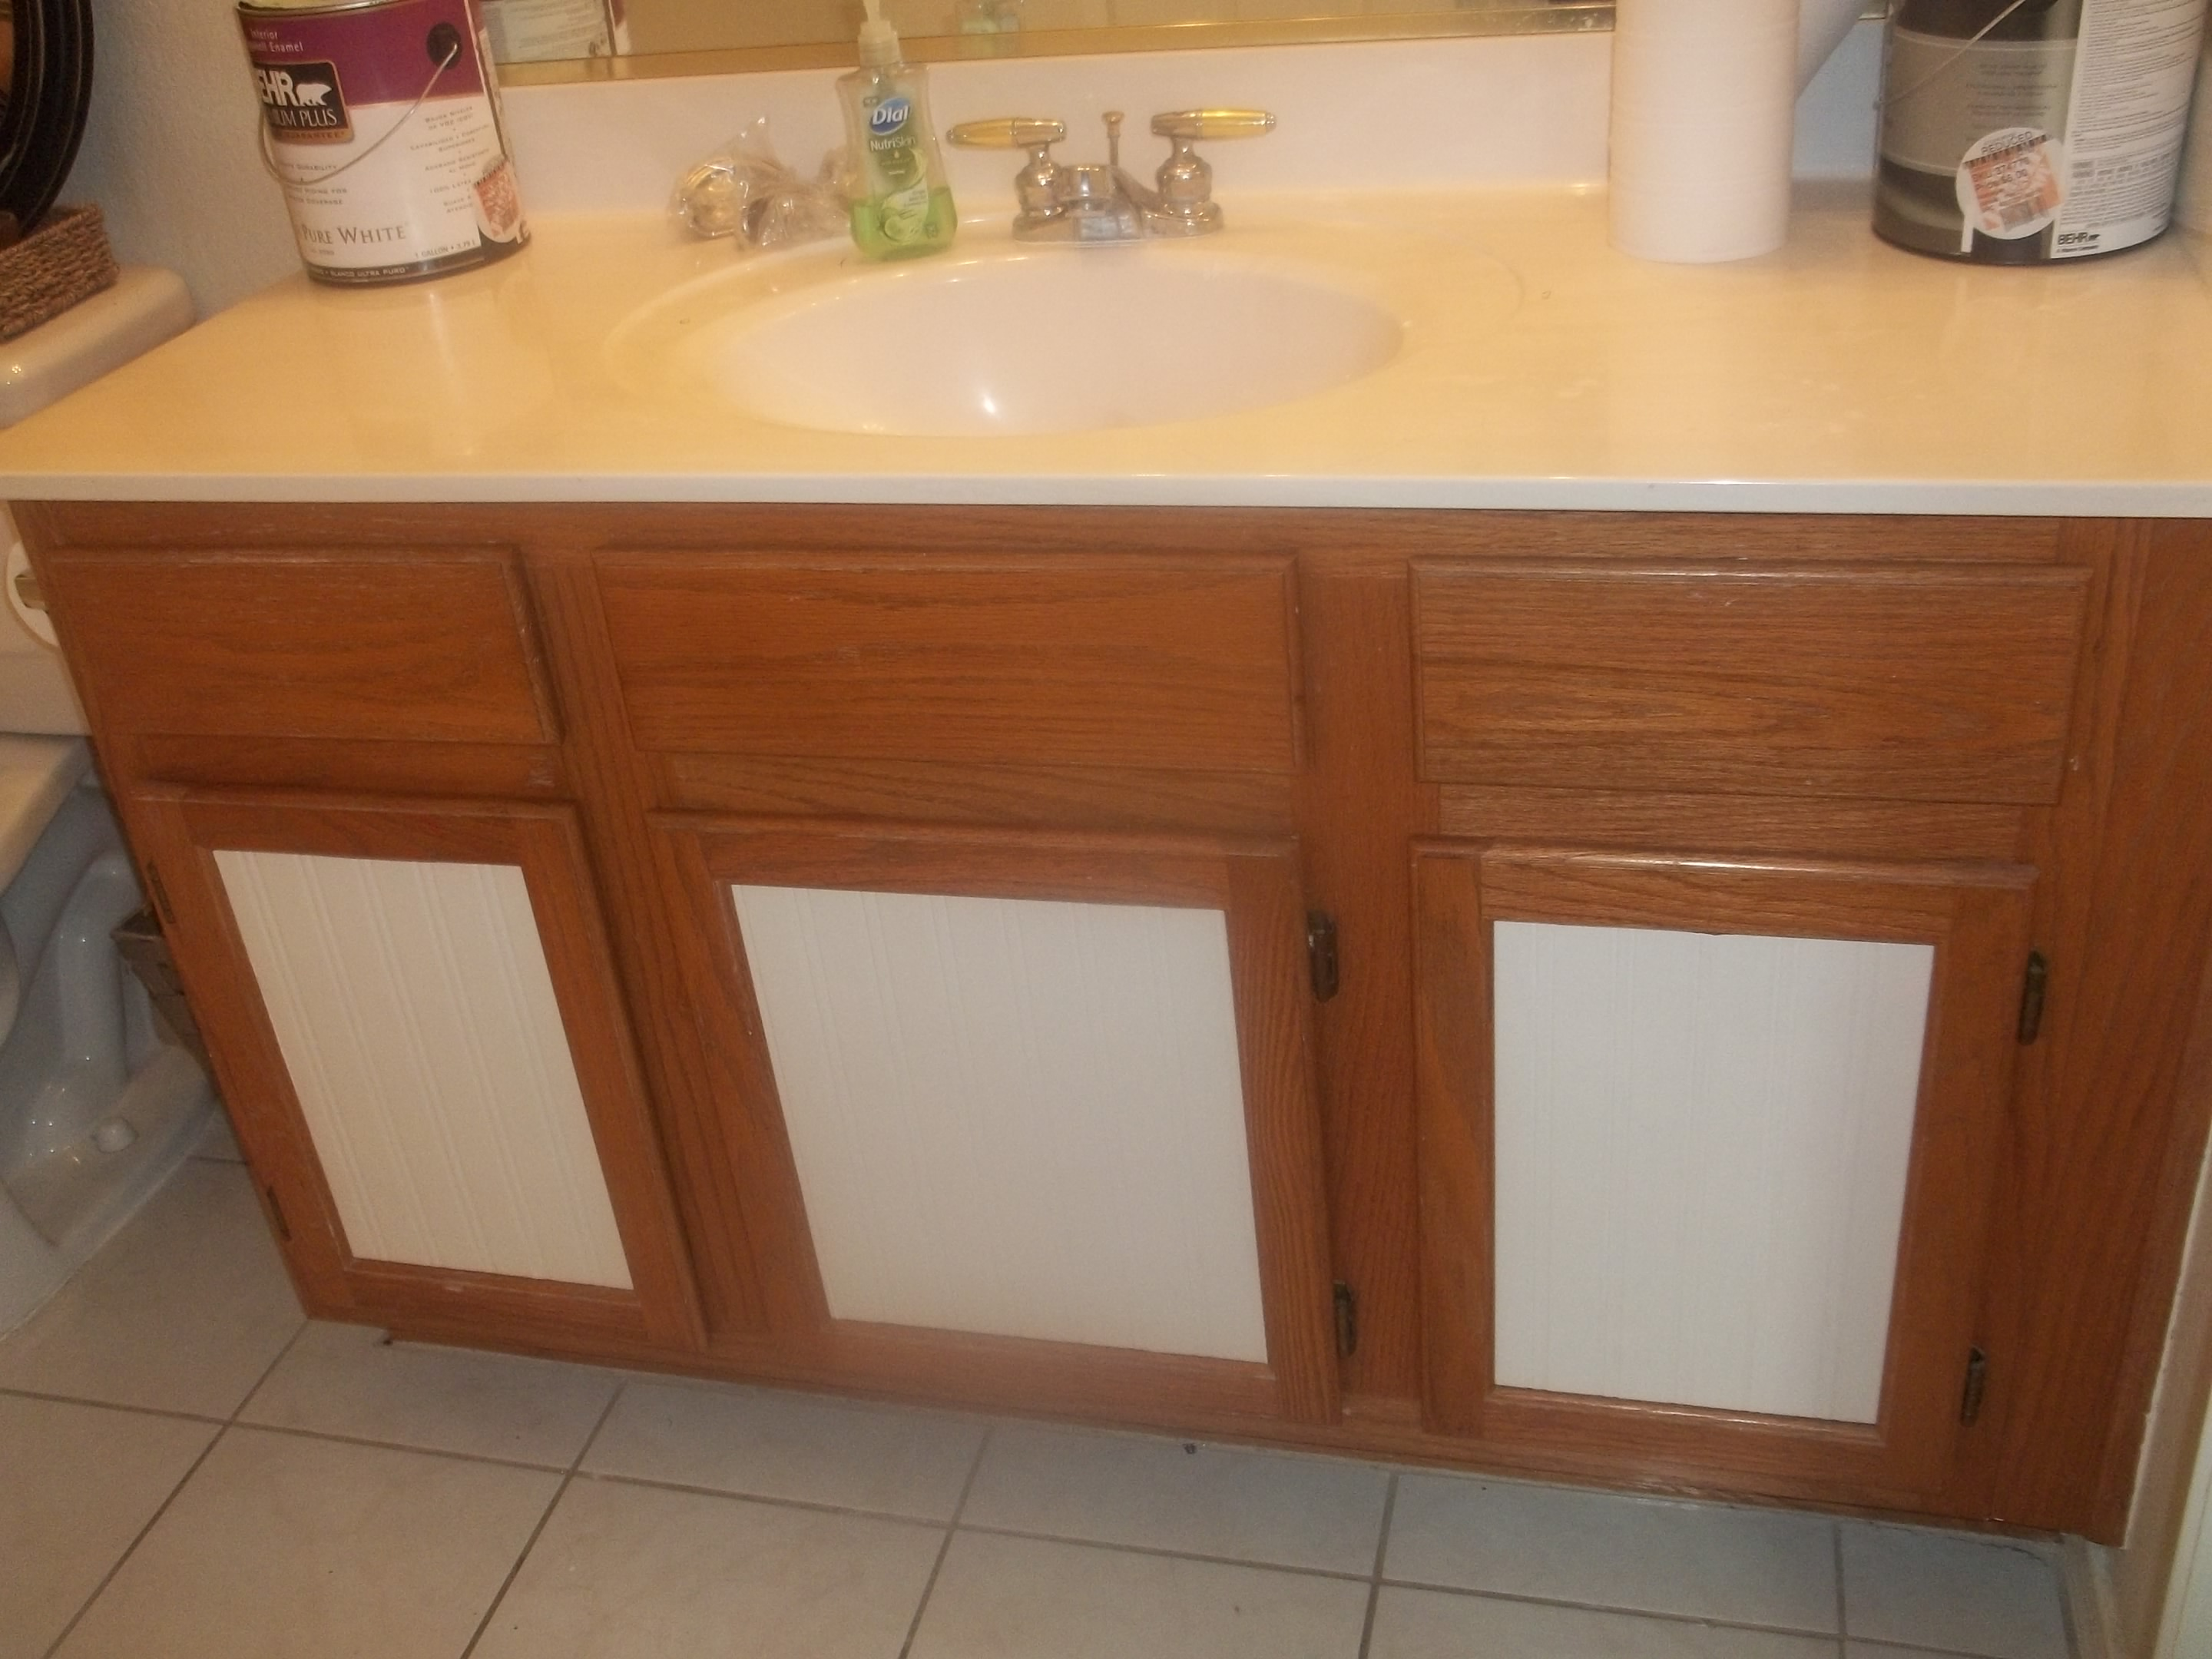 Wallpaper For Kitchen Cabinets Designed To The Nines Embrace What You Cant Change Part 1